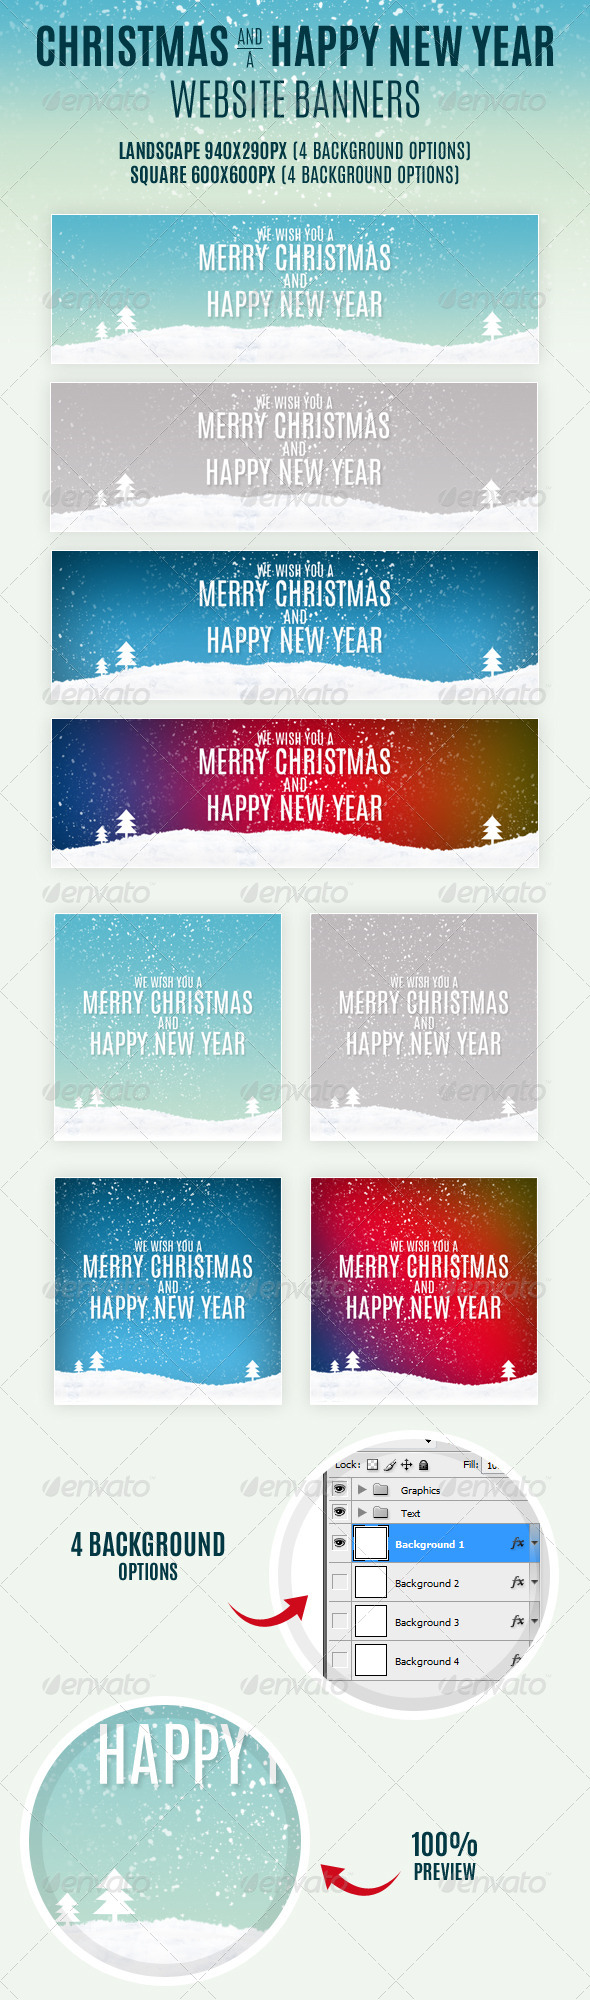 Christmas And Happy New Year Website Banners - Banners & Ads Web Elements